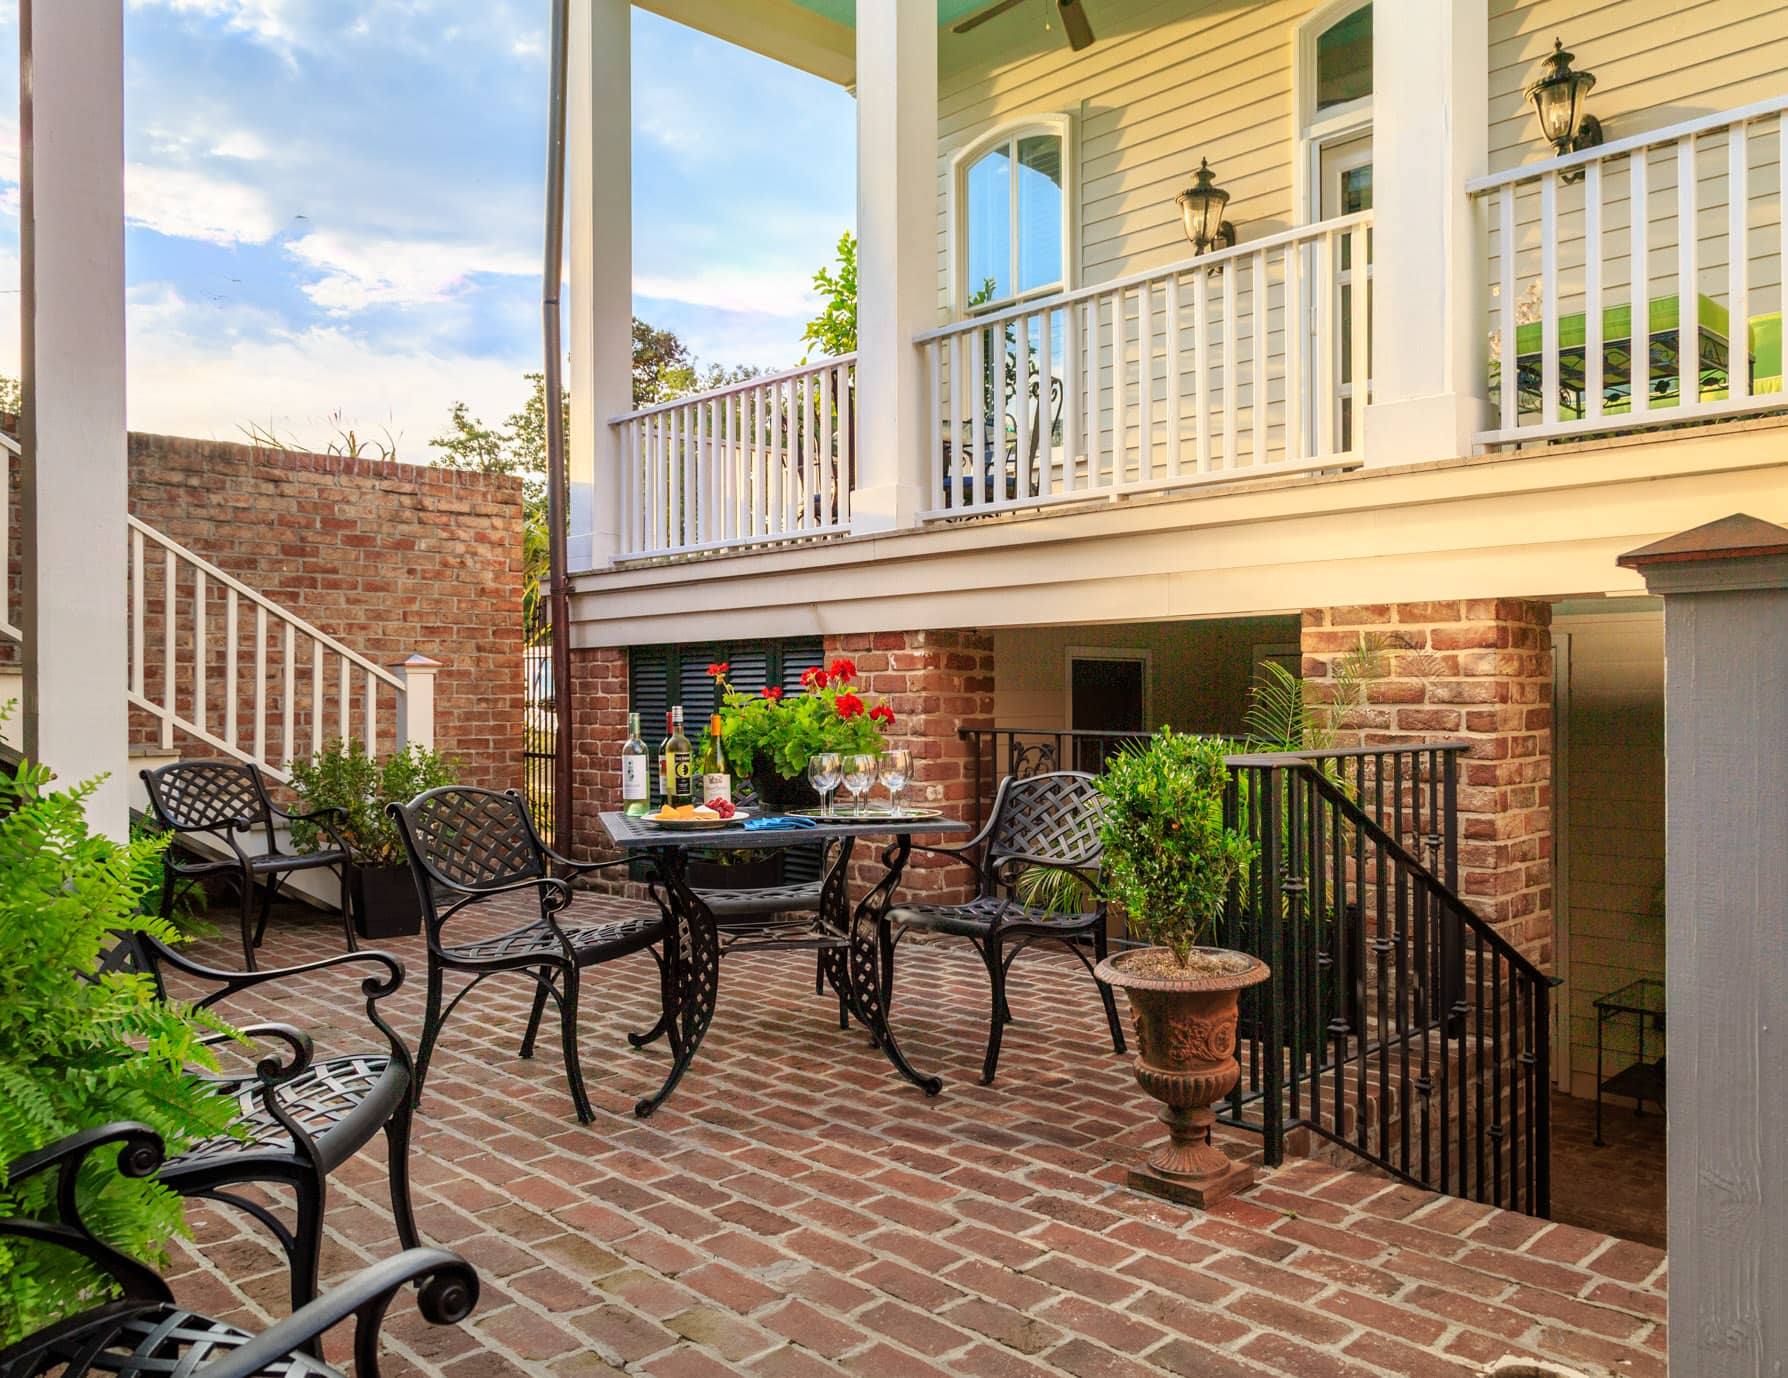 Red brick patio courtyard with tables and chairs